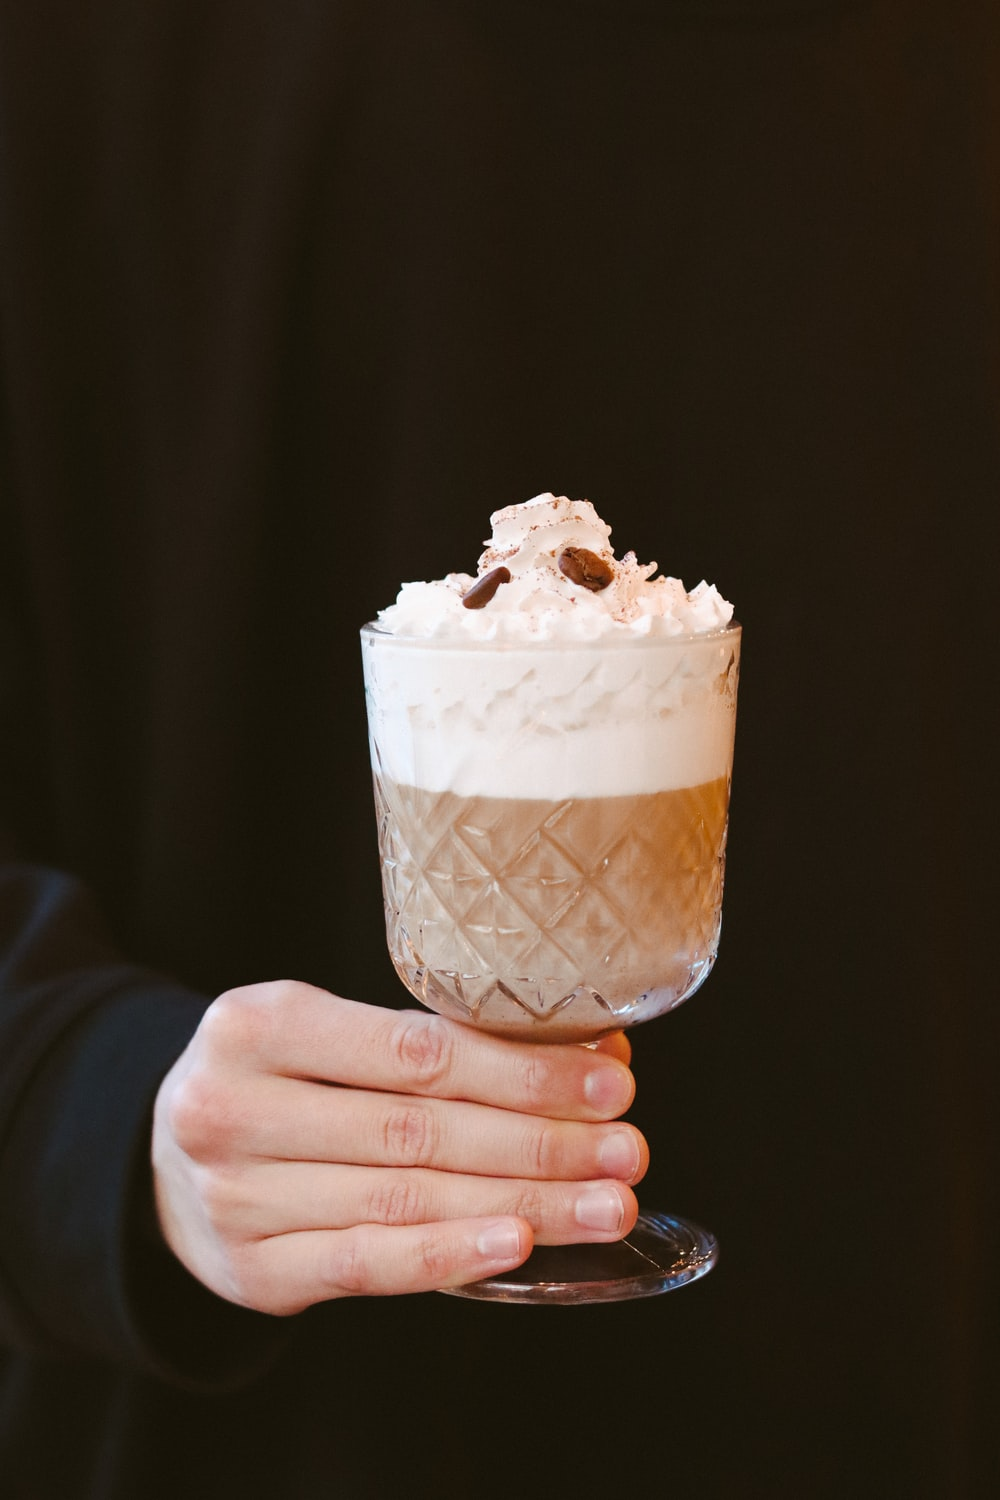 person holding ice cream in clear glass cup